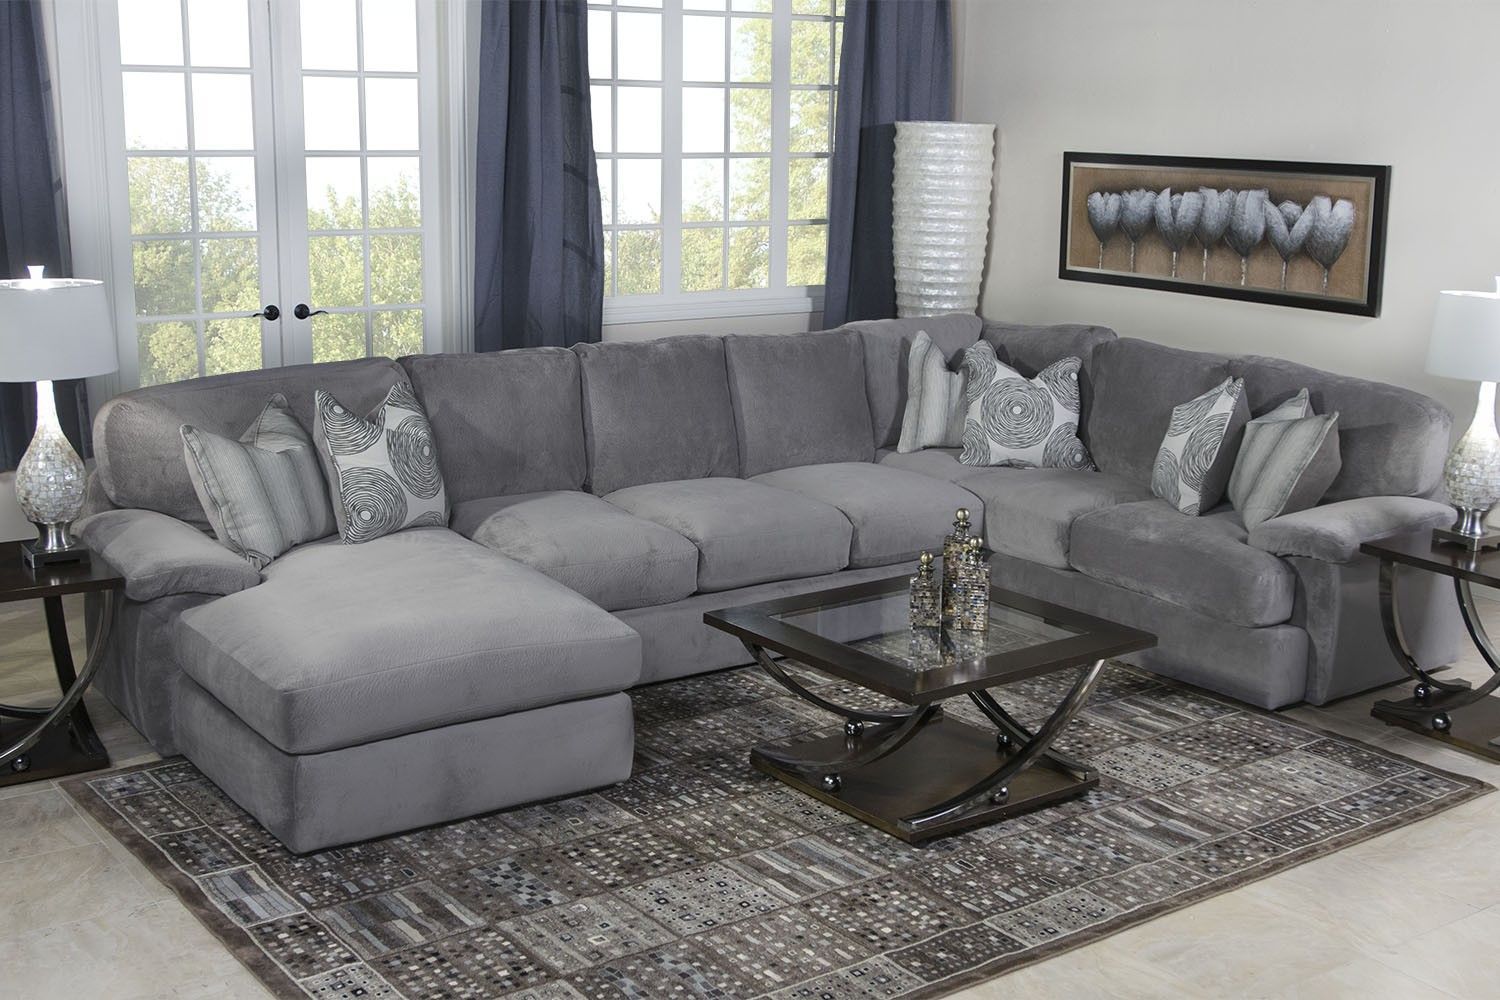 Key west sectional living room in gray living room mor for Couch living room furniture